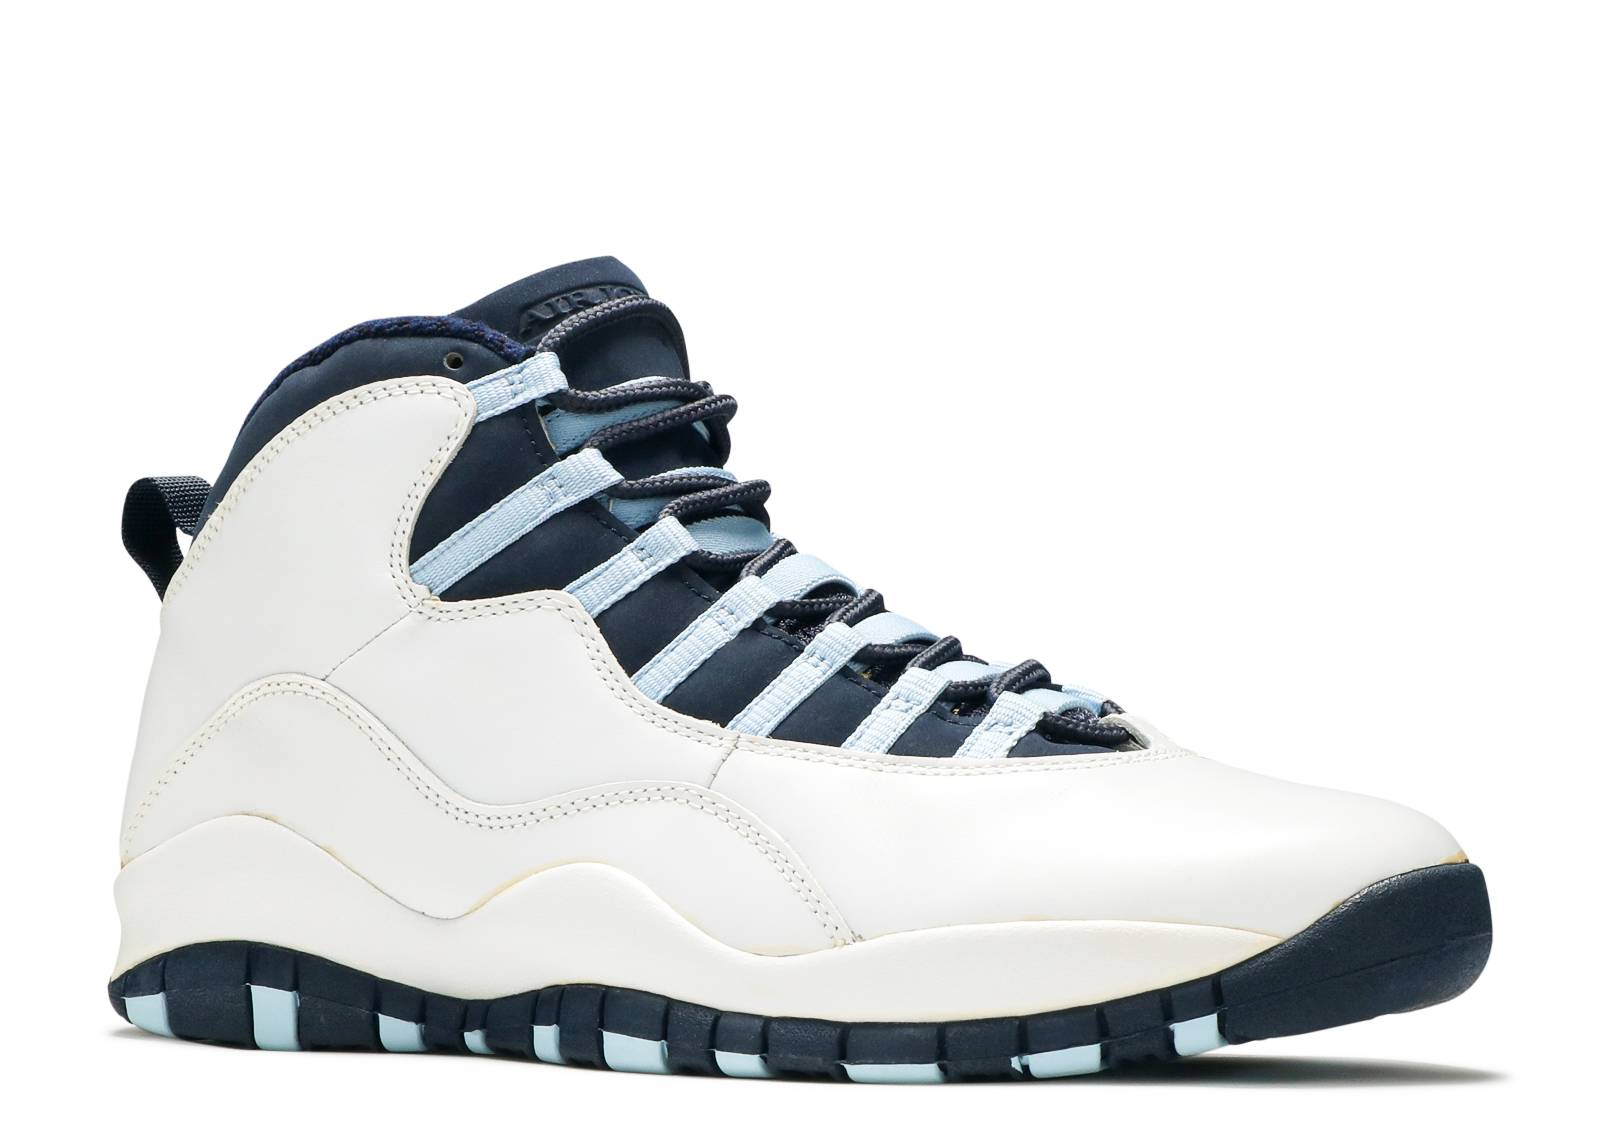 air jordan 10 retro - white/obsidian-ice blue-v red - Air Jordans | Flight  Club